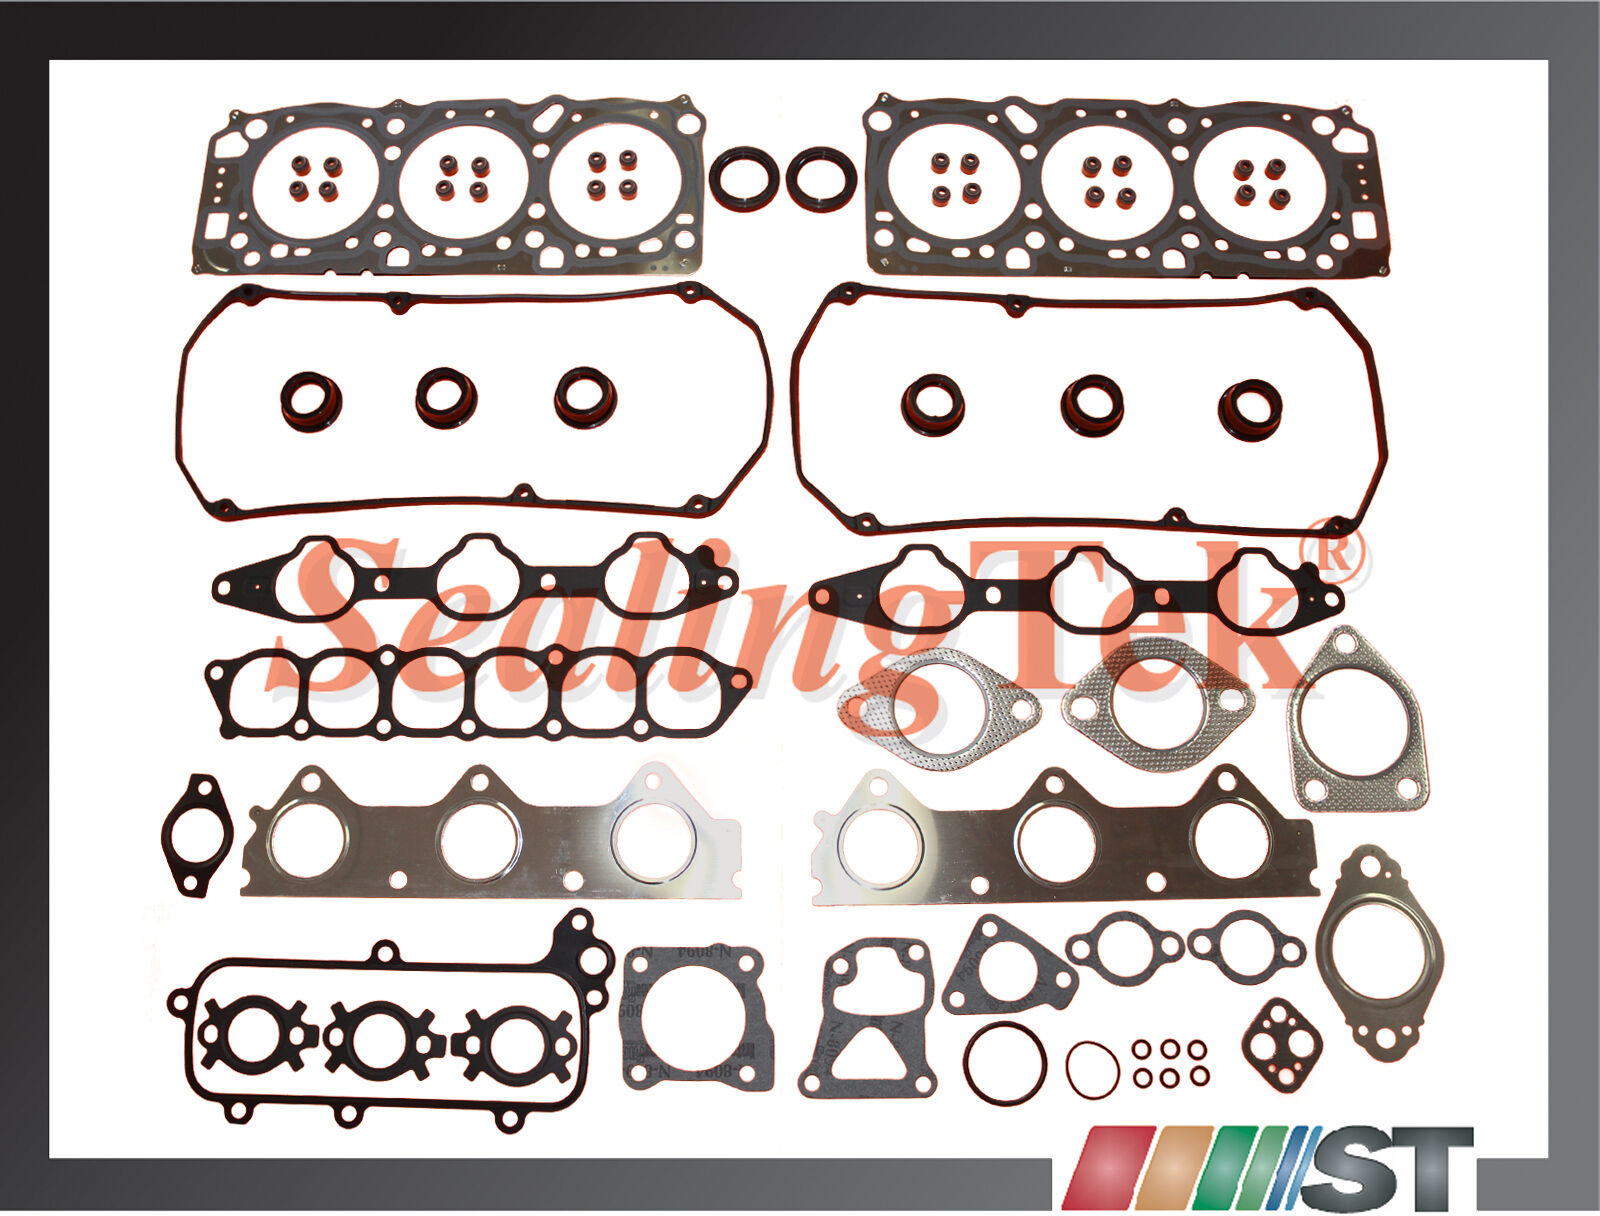 Details about Fit 99-05 Mitsubishi 3 0L 6G72 SOHC 24-Valve Engine Cylinder  Head Gasket Set kit